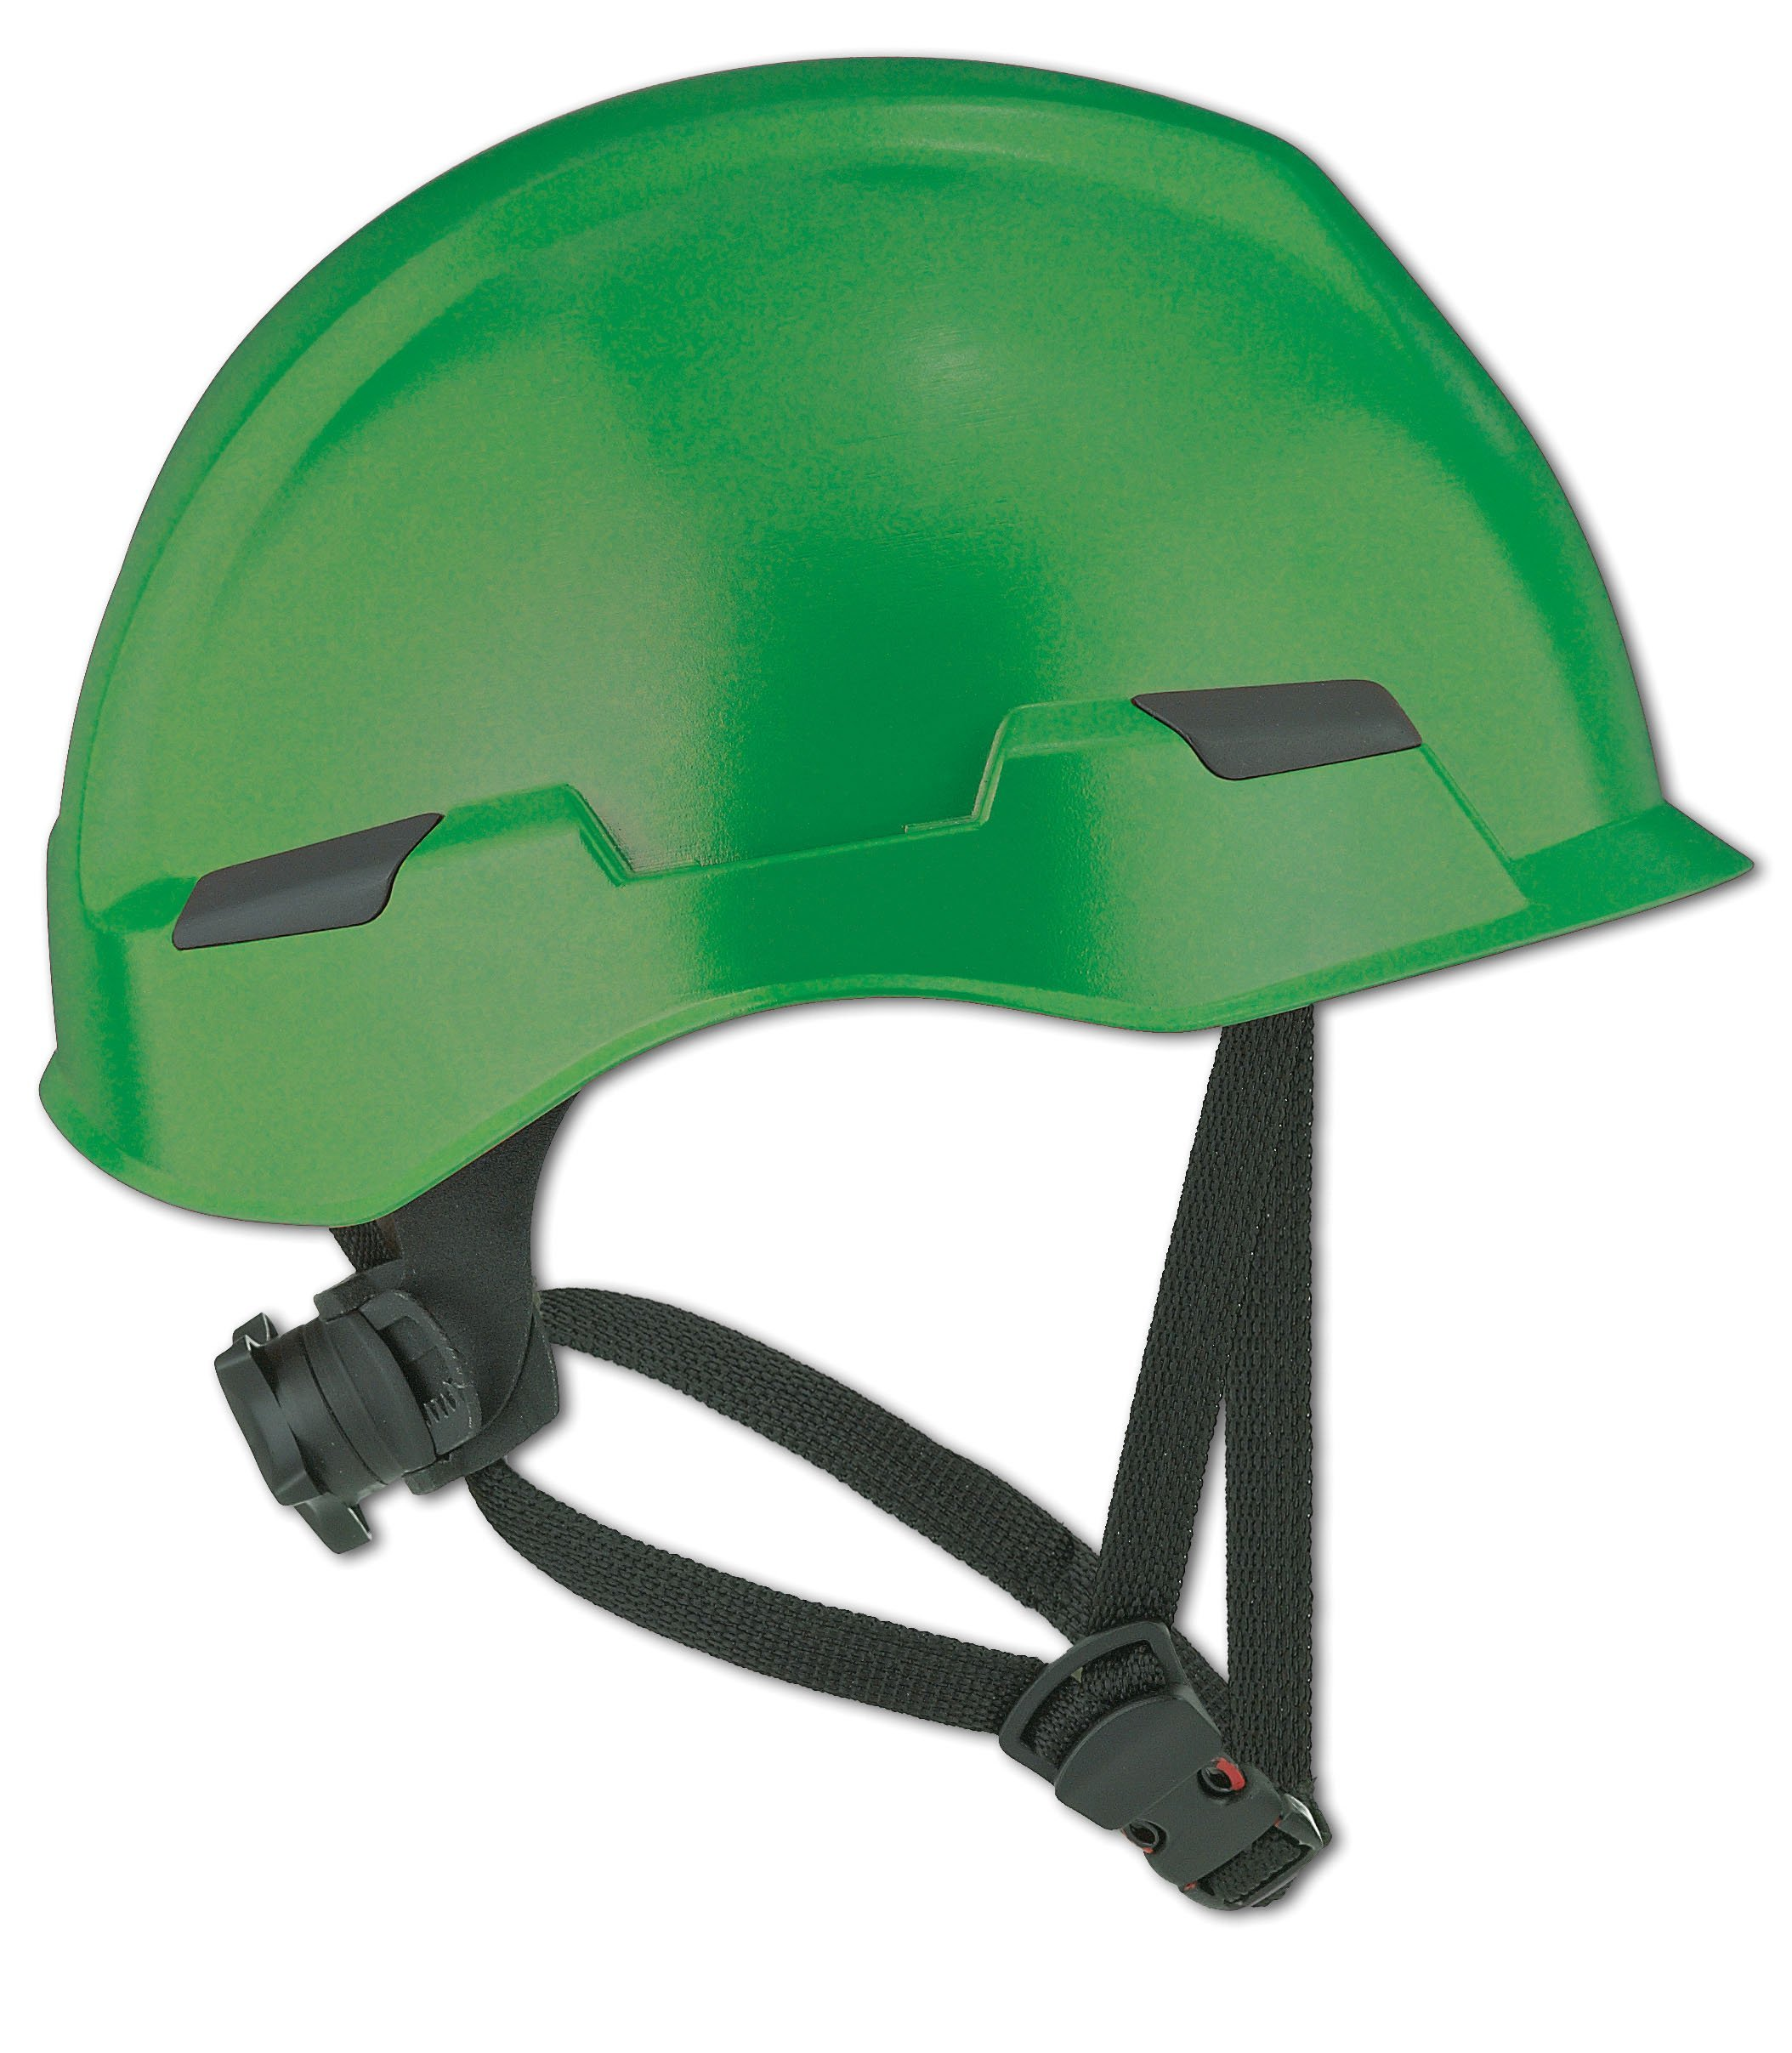 Dynamic Safety HP142R/04 Rocky Hard Hat with Nylon Suspension and Sure-Lock II Ratchet, Permanently Attached 4 Points Chin-Strap Adjustment, ANSI Type II, One Size, Dark Green